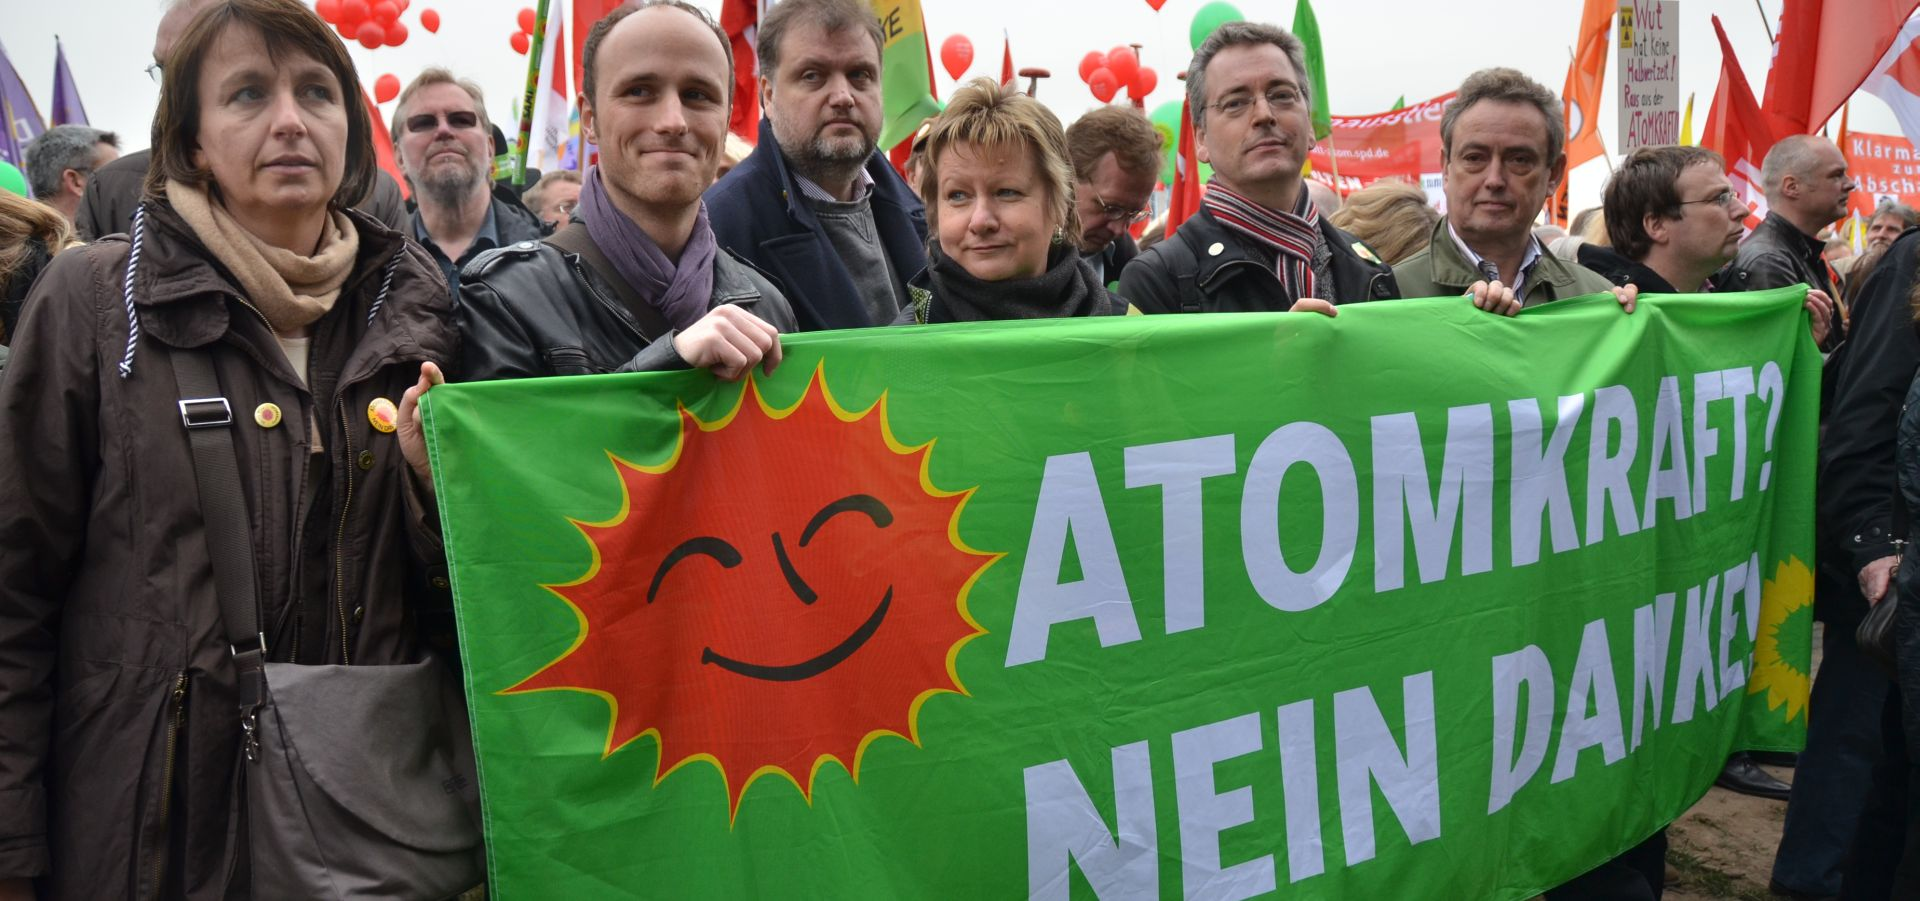 "People are demonstrating and holding a banner which says ""No to nuclear energy"" in German."